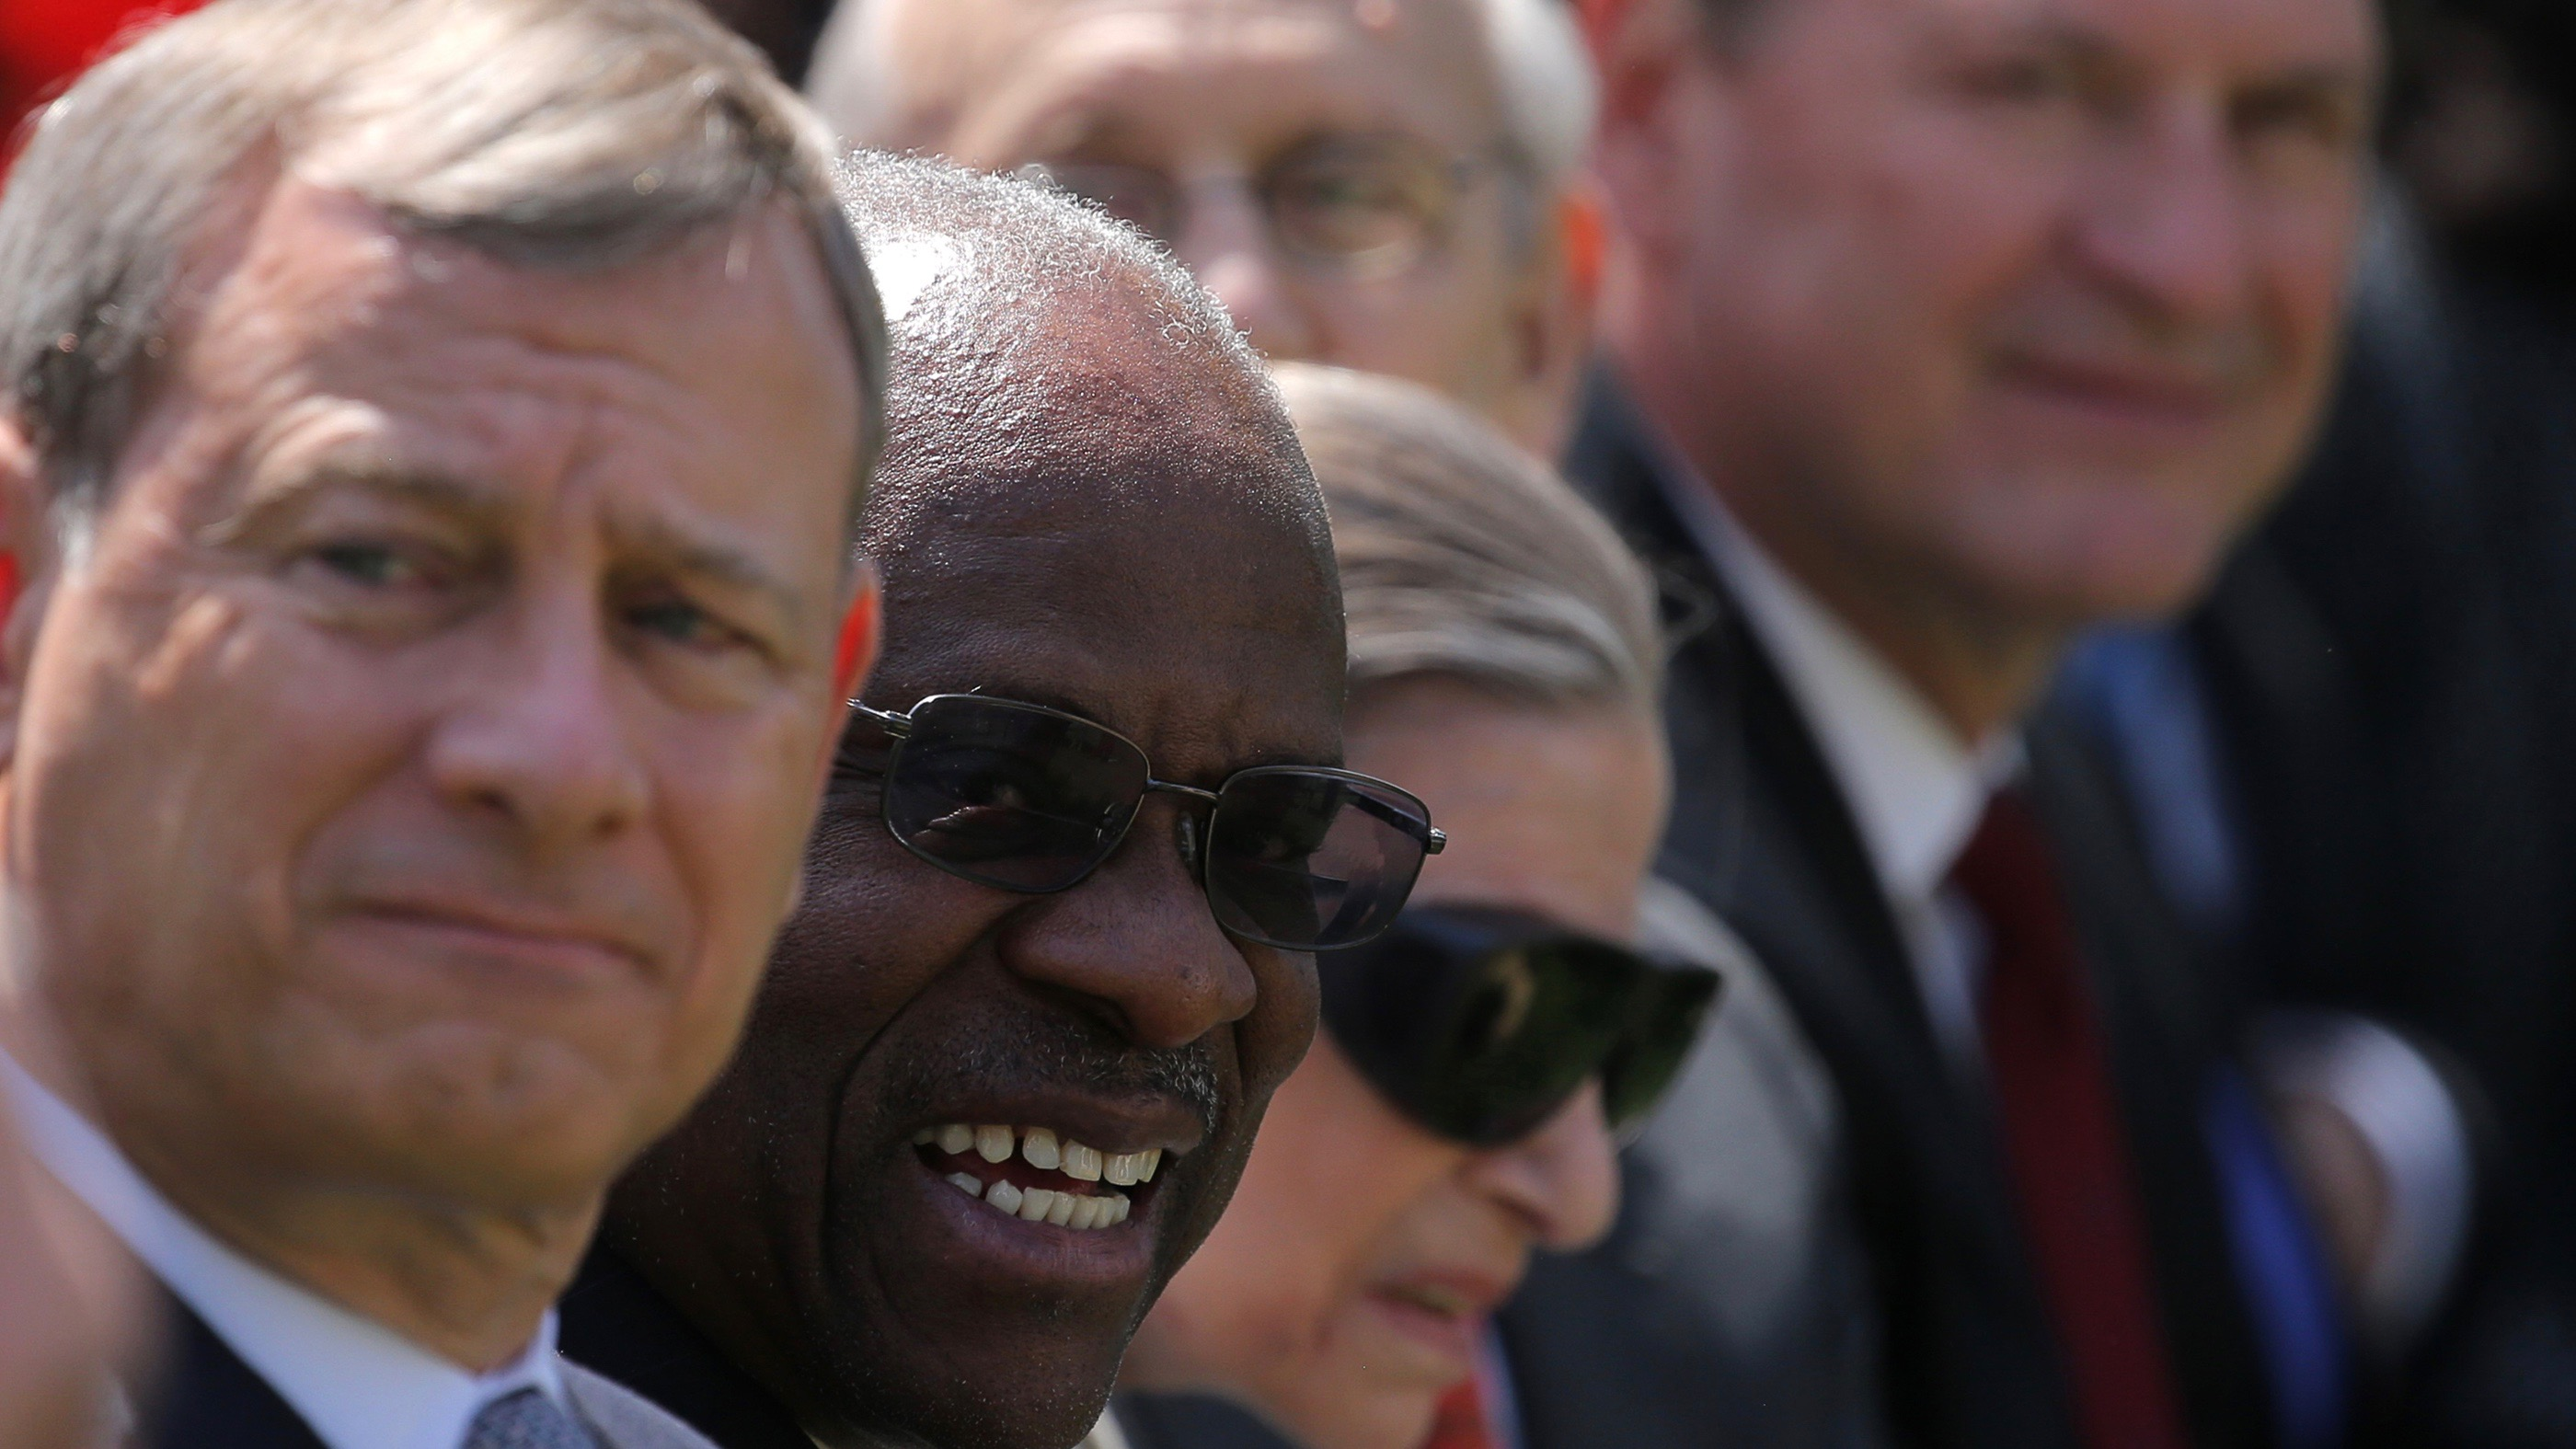 Chief Justice John Roberts, Clarence Thomas, Ruth Bader Ginsburg, Stephen Breyer and Samuel Alito attend the daytime swearing in ceremony for new Supreme Court Associate Justice Neil Gorsuch on April 10, 2017.